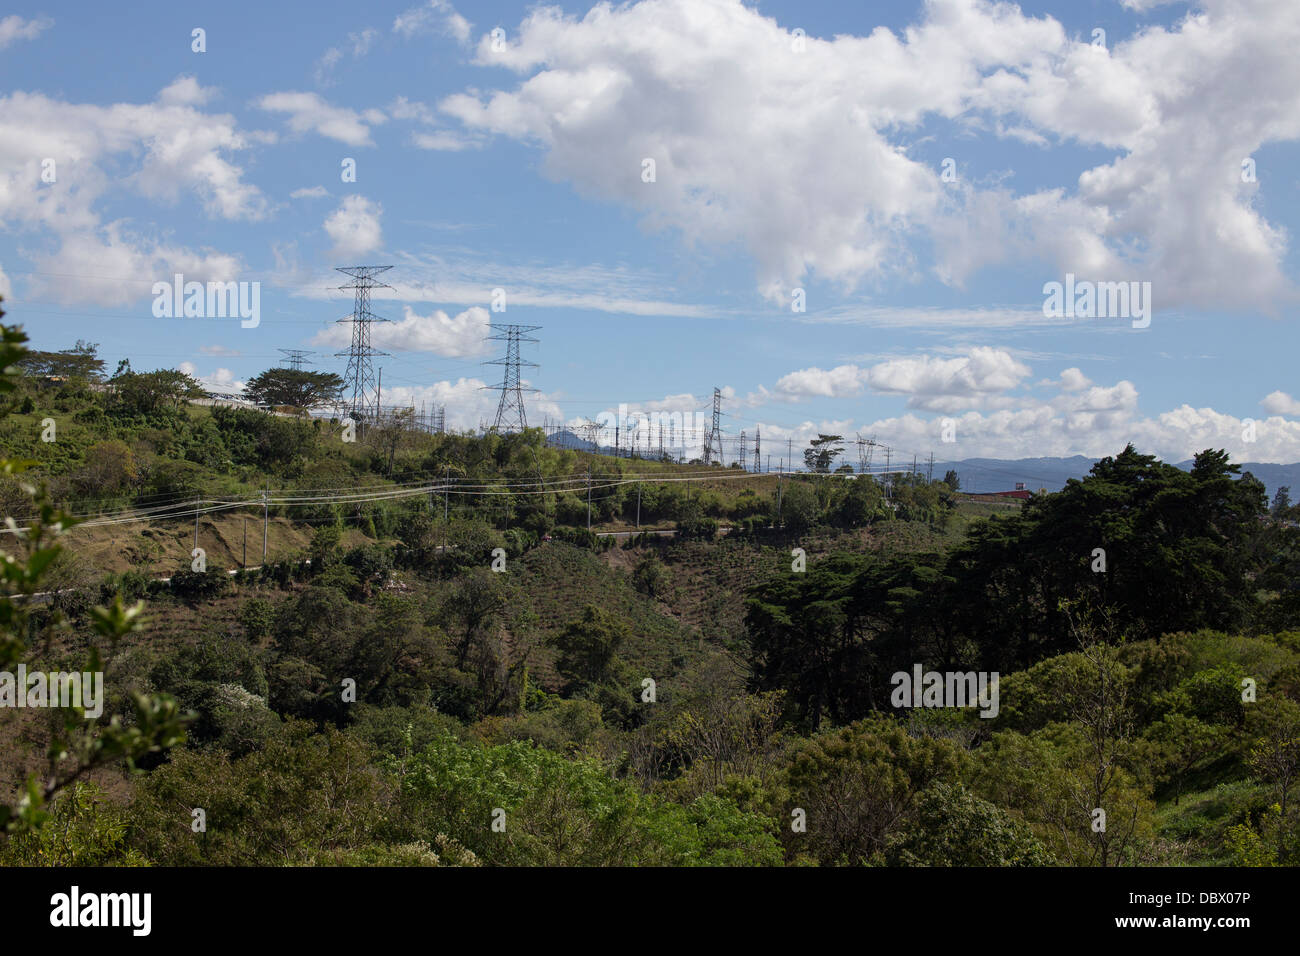 Image overlooking coffee plantations and some power lines on a hill in Costa Rica - Stock Image